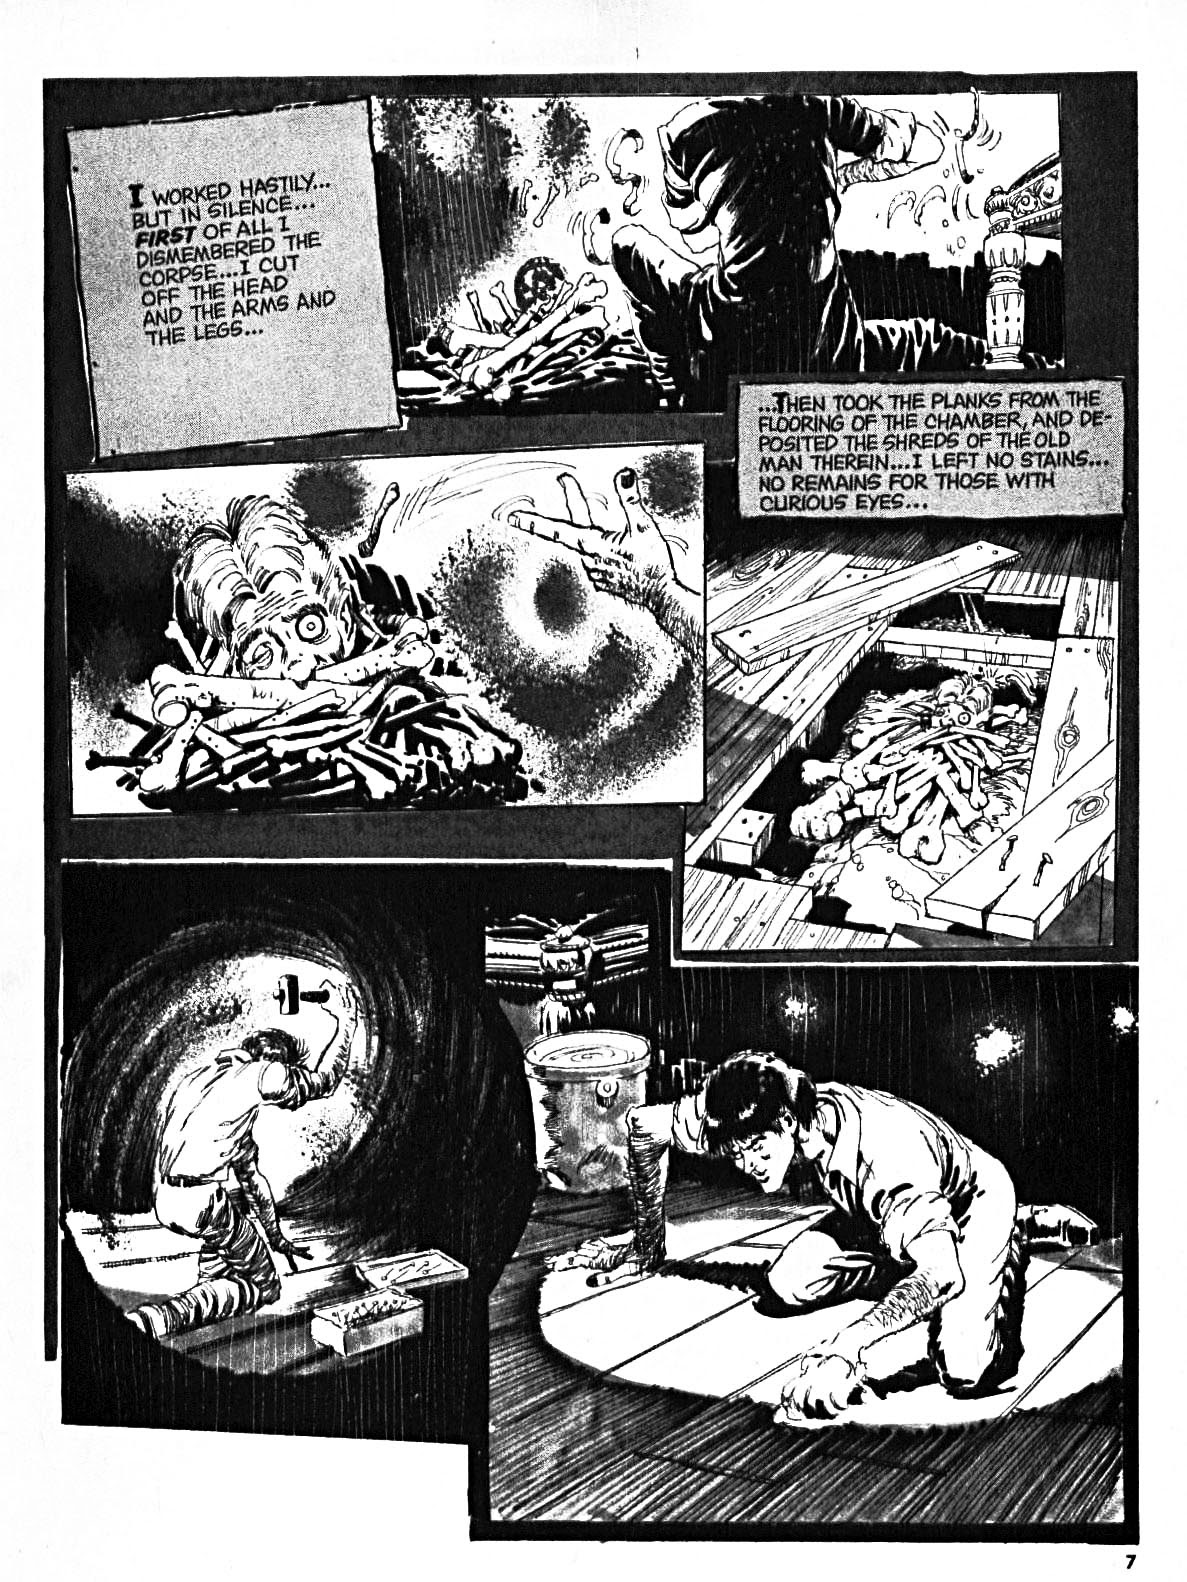 Scream (1973) issue 8 - Page 7